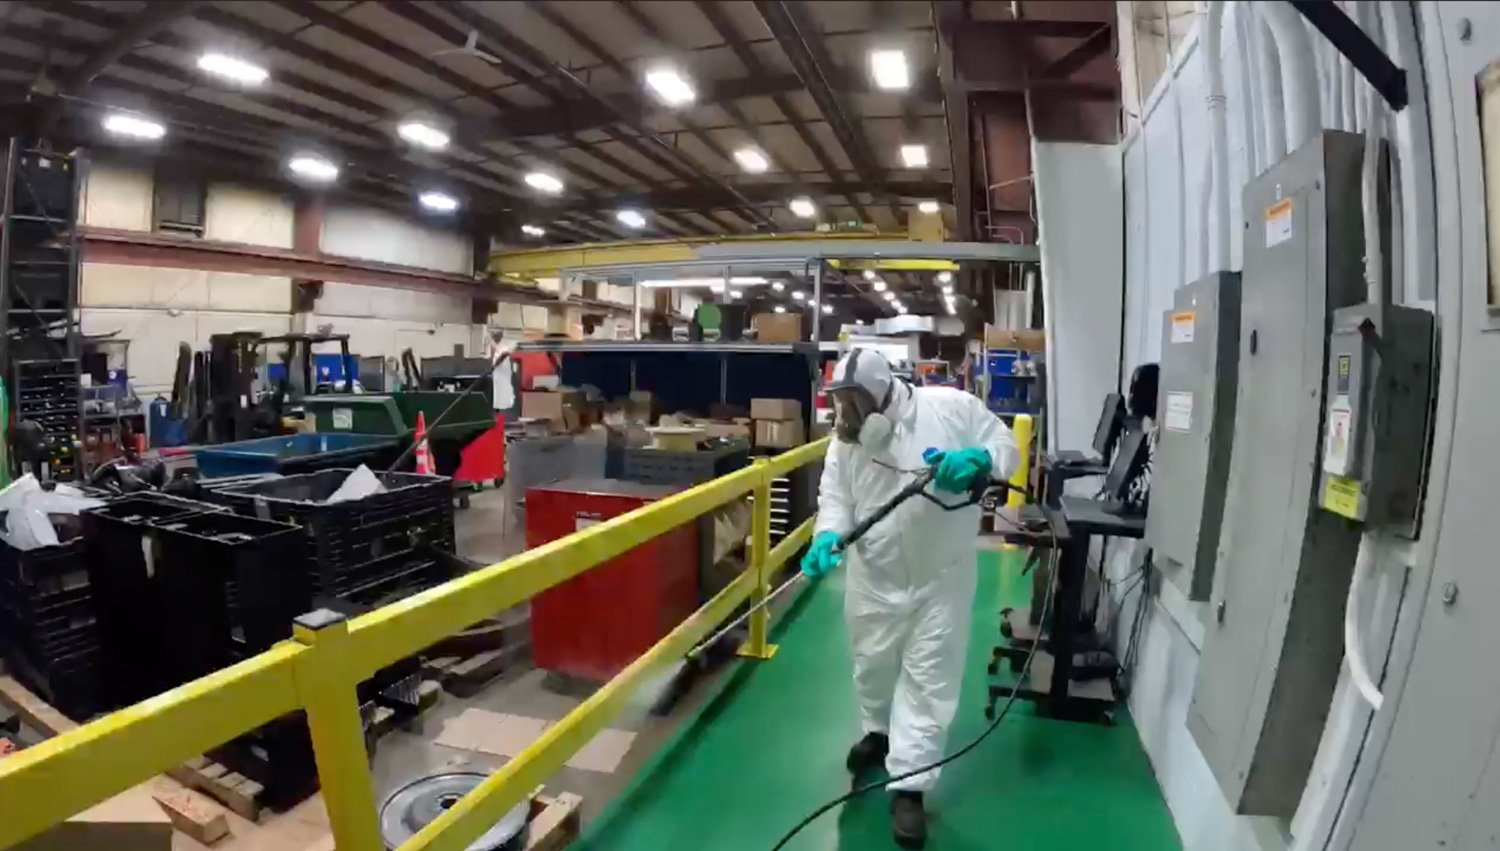 spraying disinfectant inside manufacturing facility